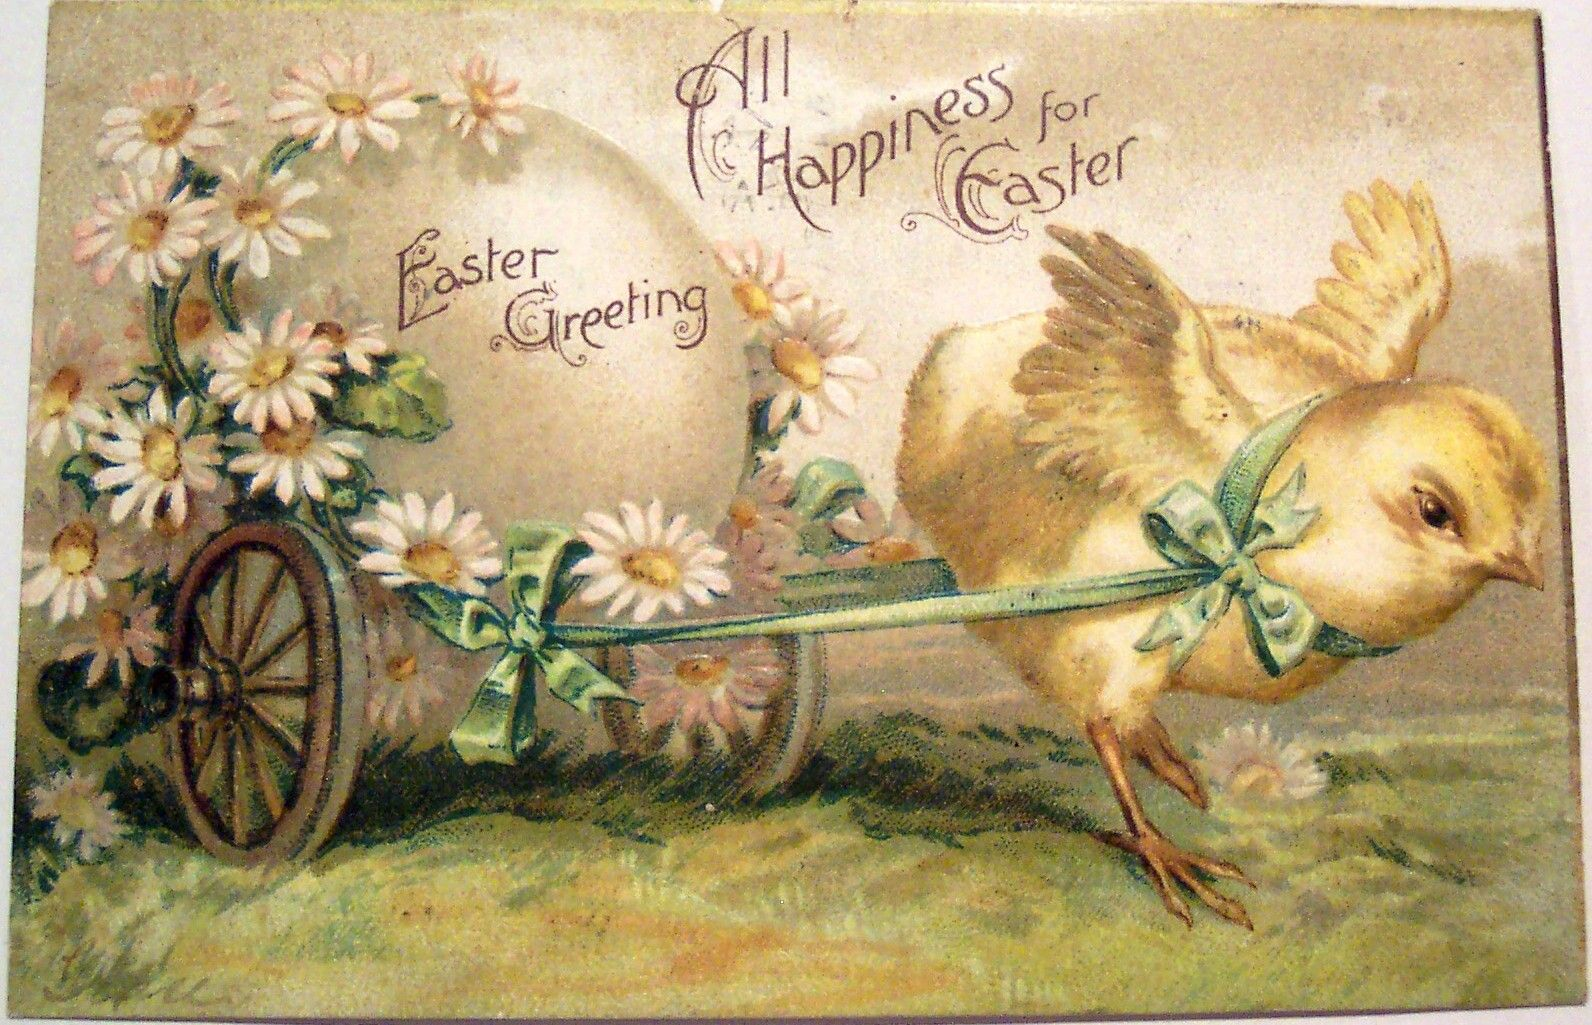 Vintage Easter Images Such A Sweet Little Card With The Chick And